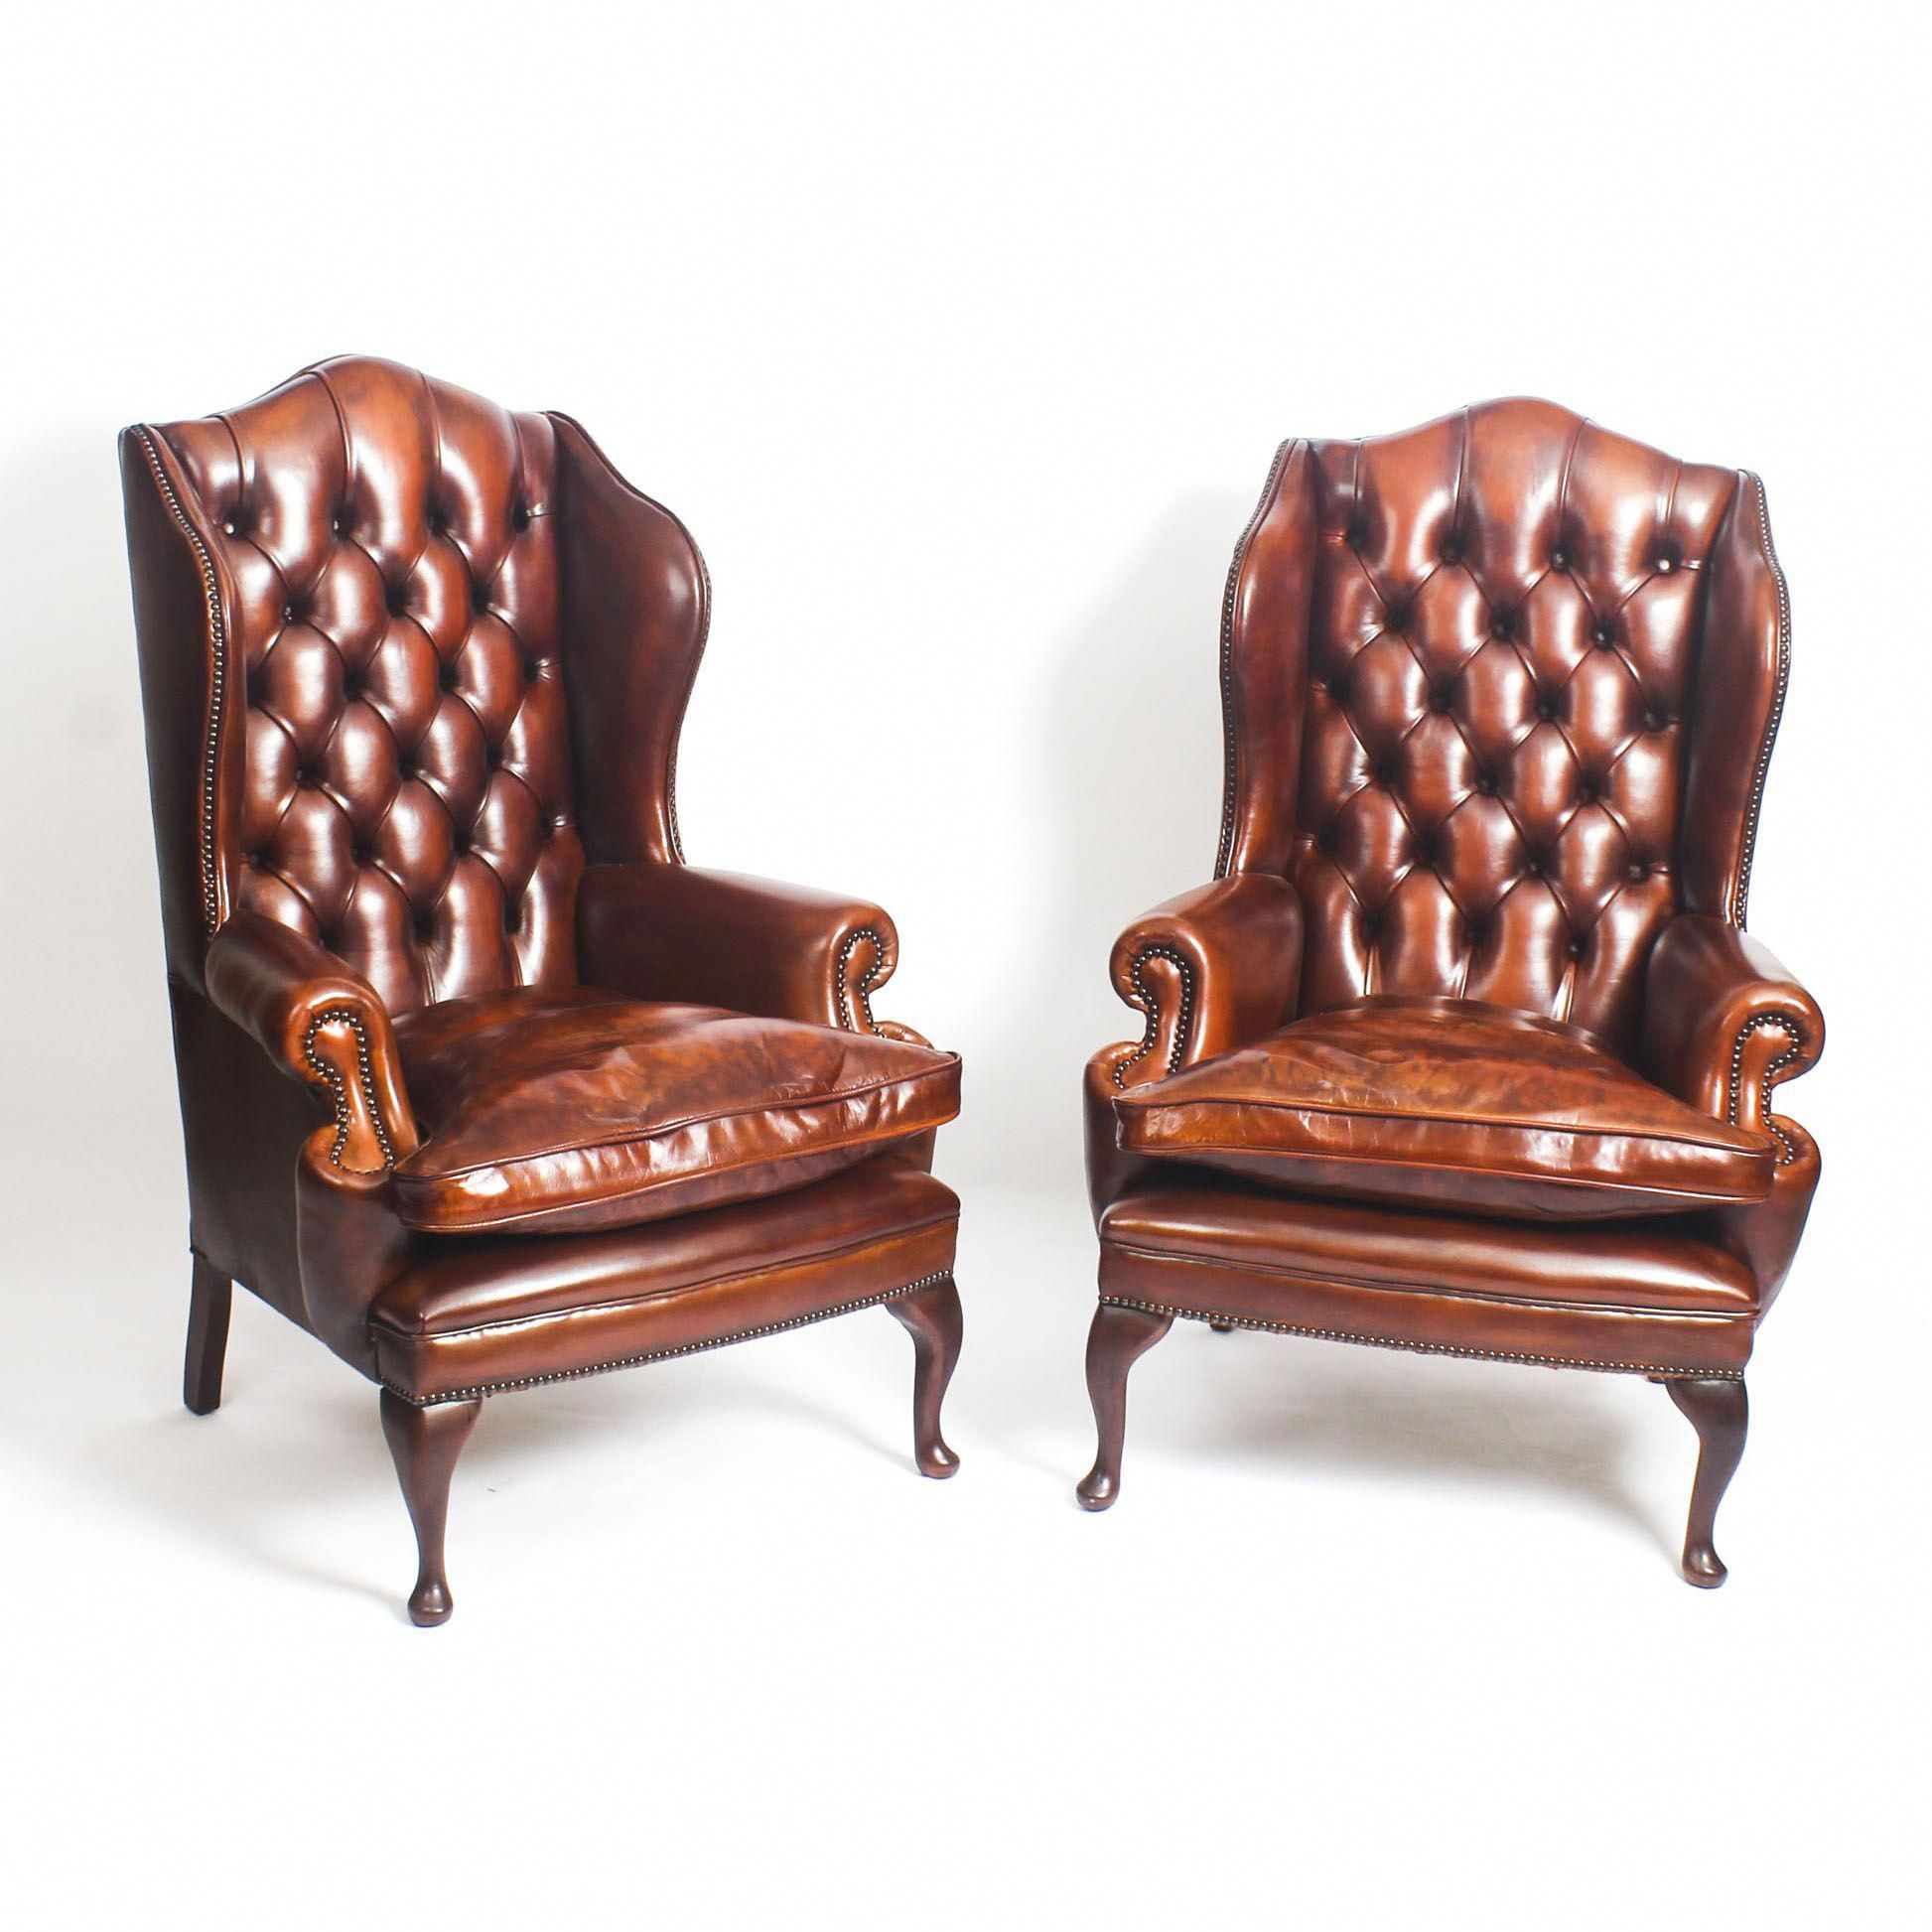 A Very Handsome Pair Of Bespoke New Leather Wingback Chairs Wingbackchair